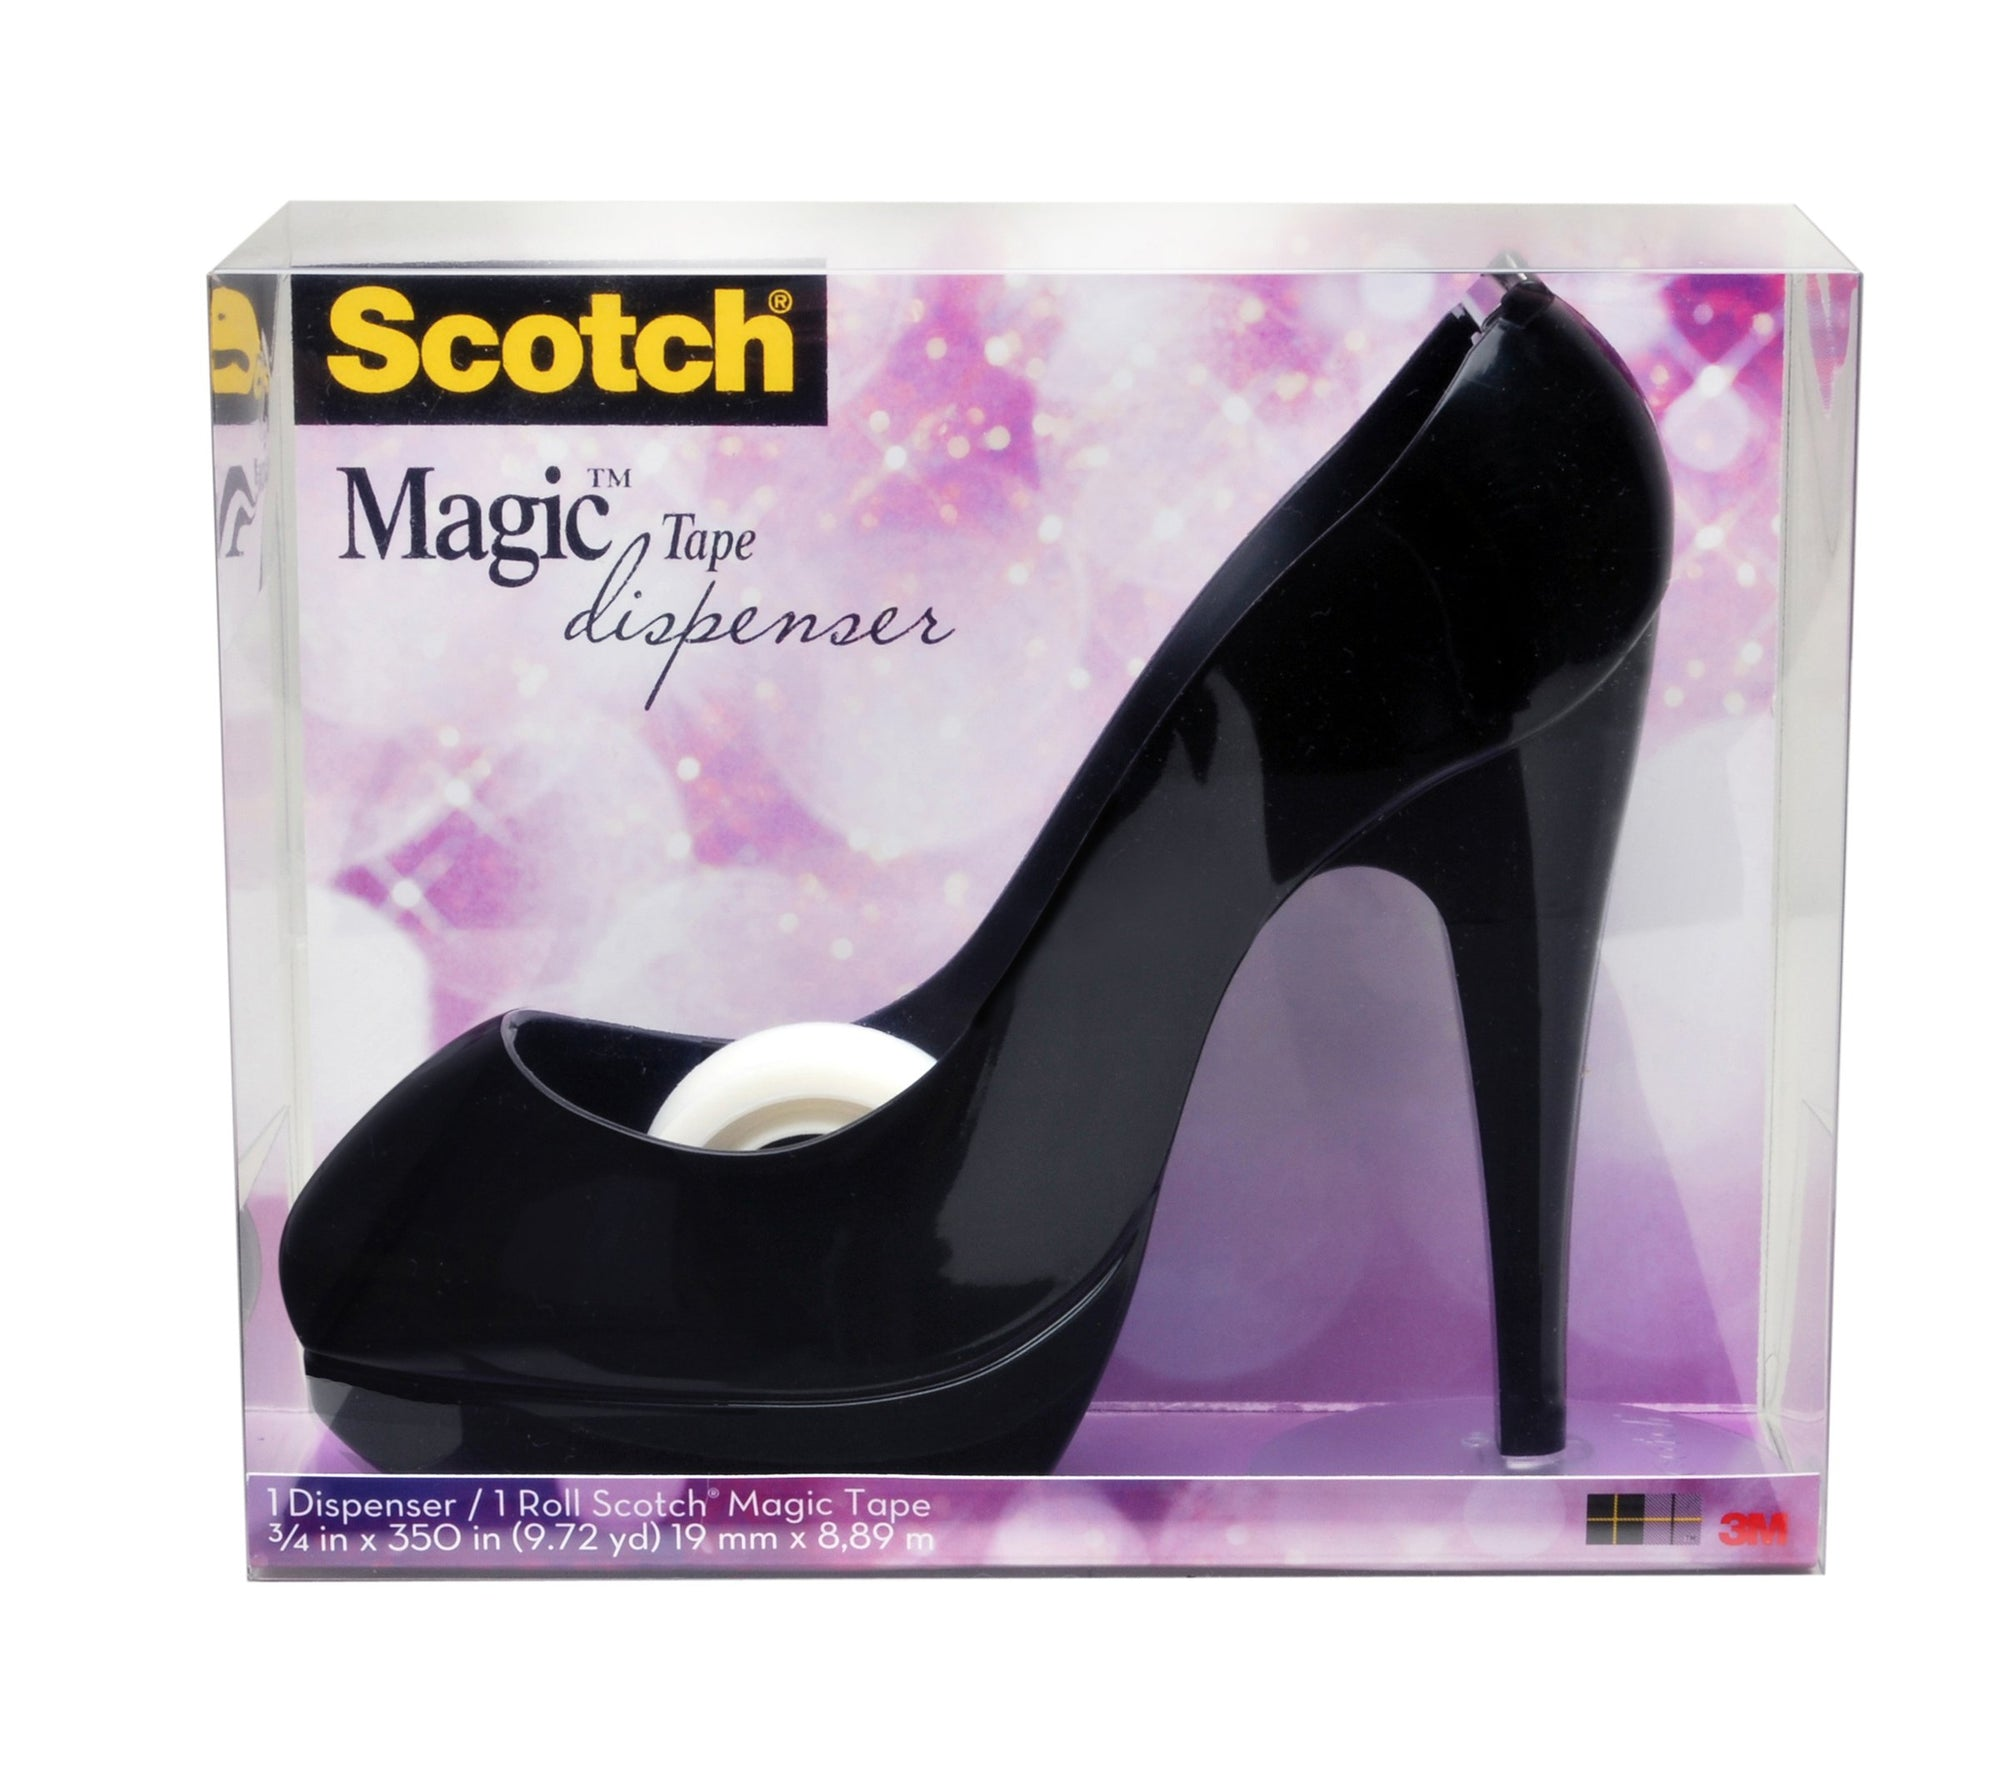 Scotch Shoe Dispenser with Scotch Magic Tape, Black, 3/4 x 350 Inches, 1 Roll, 1 Dispenser (C30-SHOE-B) - White Elephant Gift